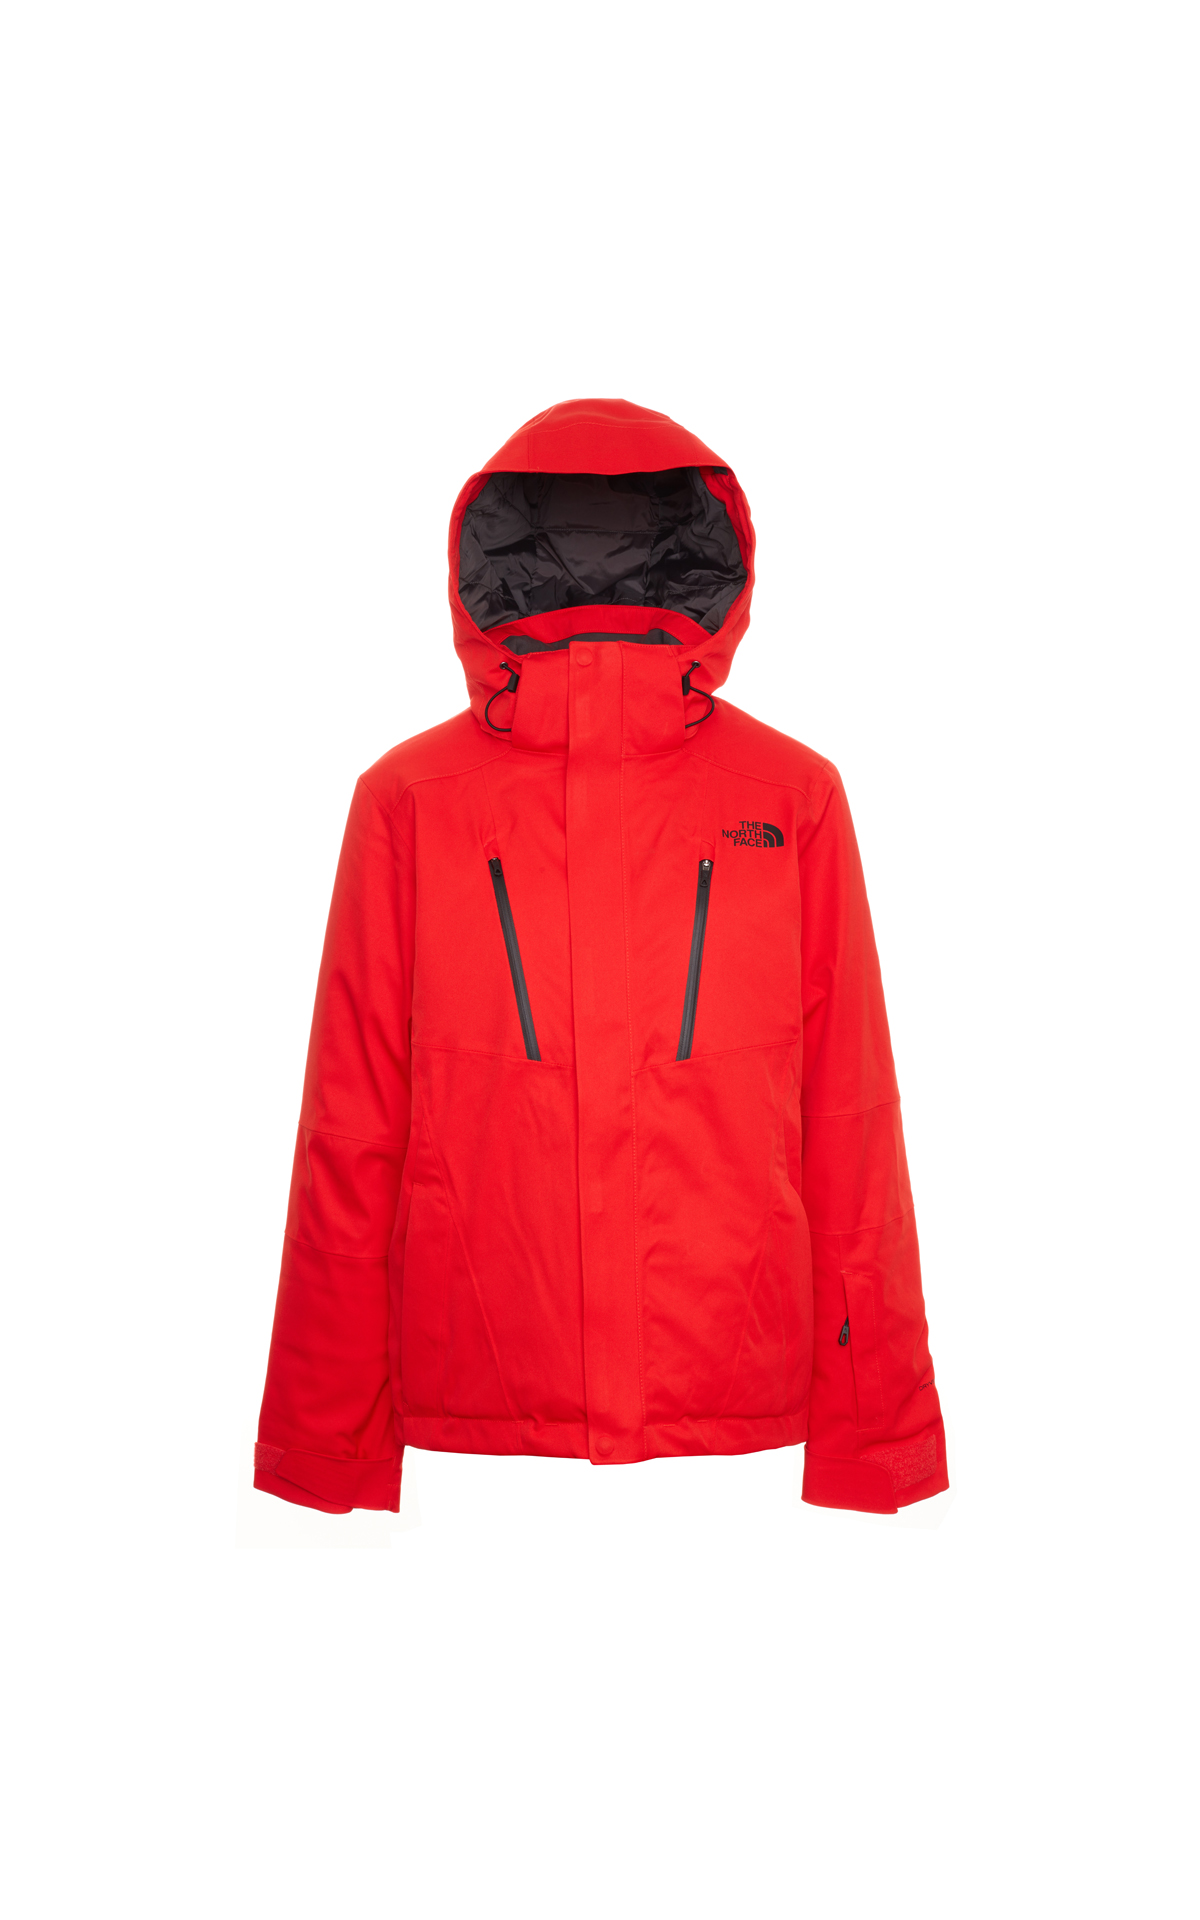 The North Face  Mens red ravina jacket from Bicester Village